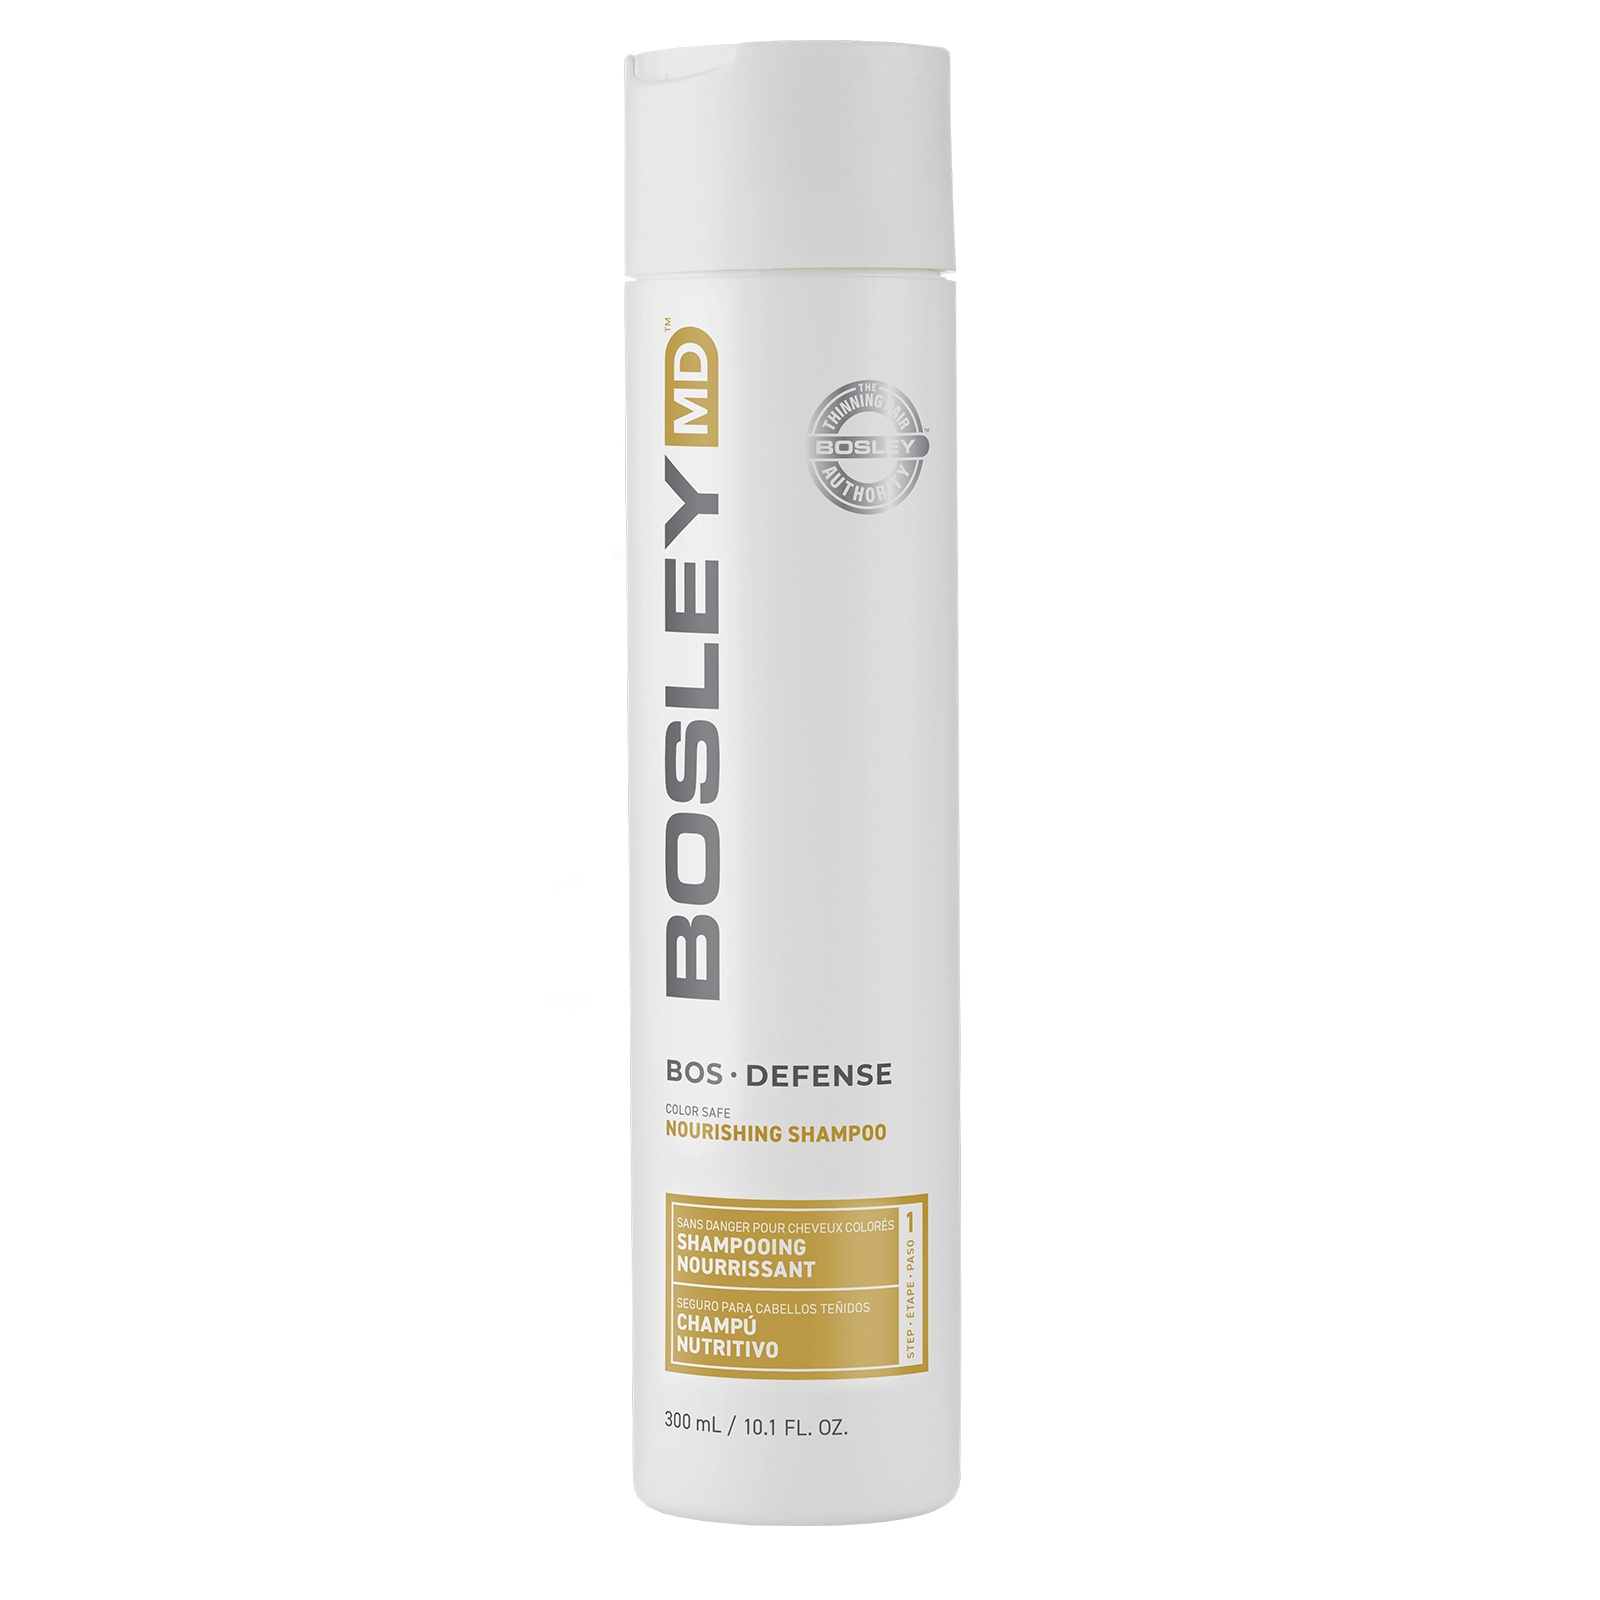 BosDefense Color-Safe Nourishing Shampoo